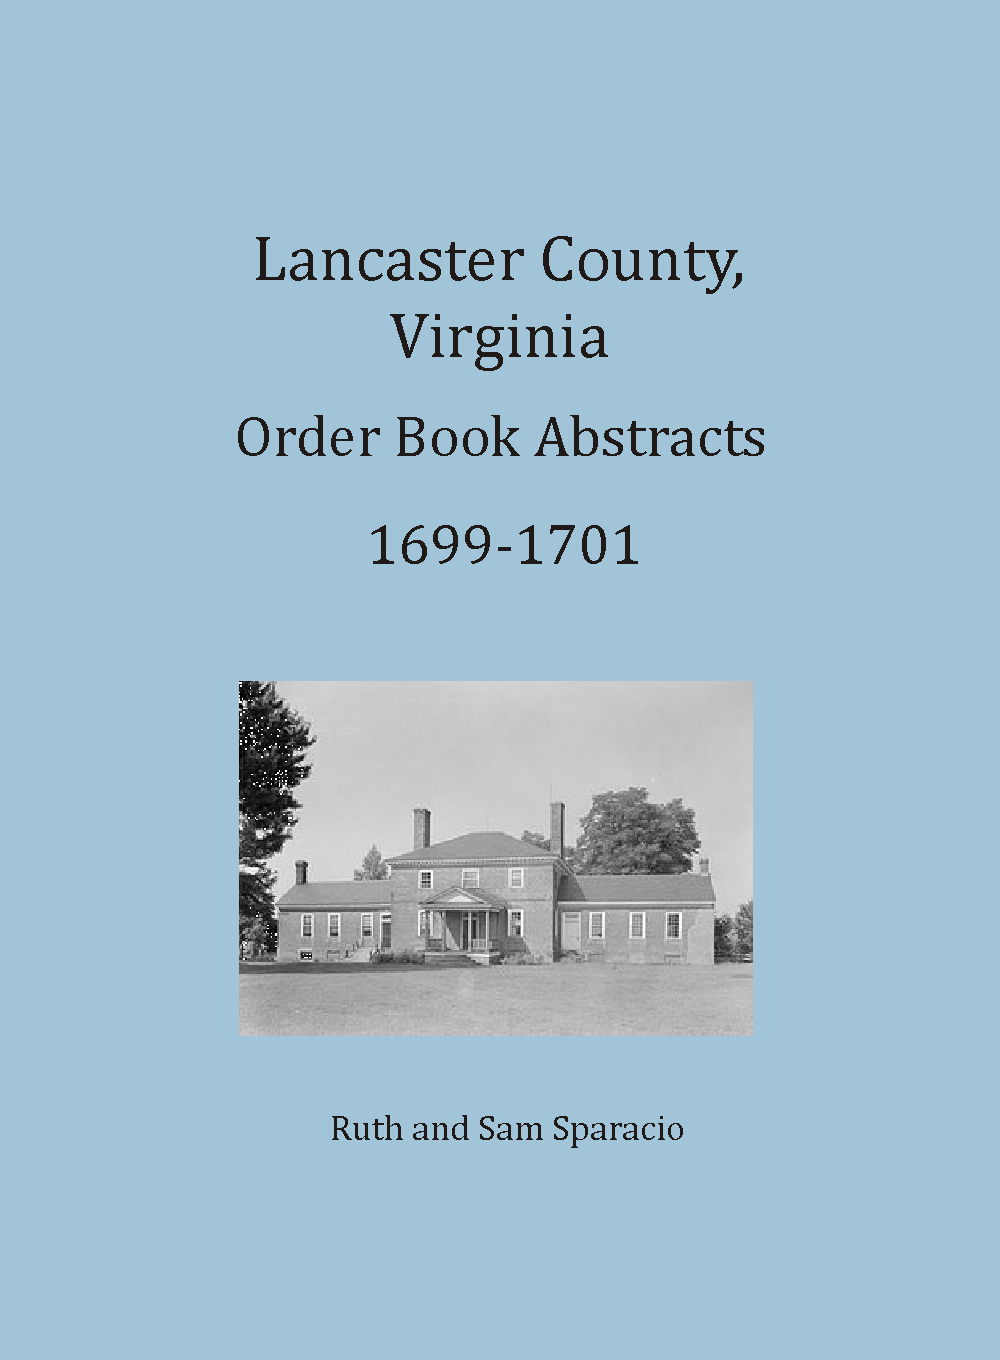 Lancaster County, Virginia Order Book, 1699-1701